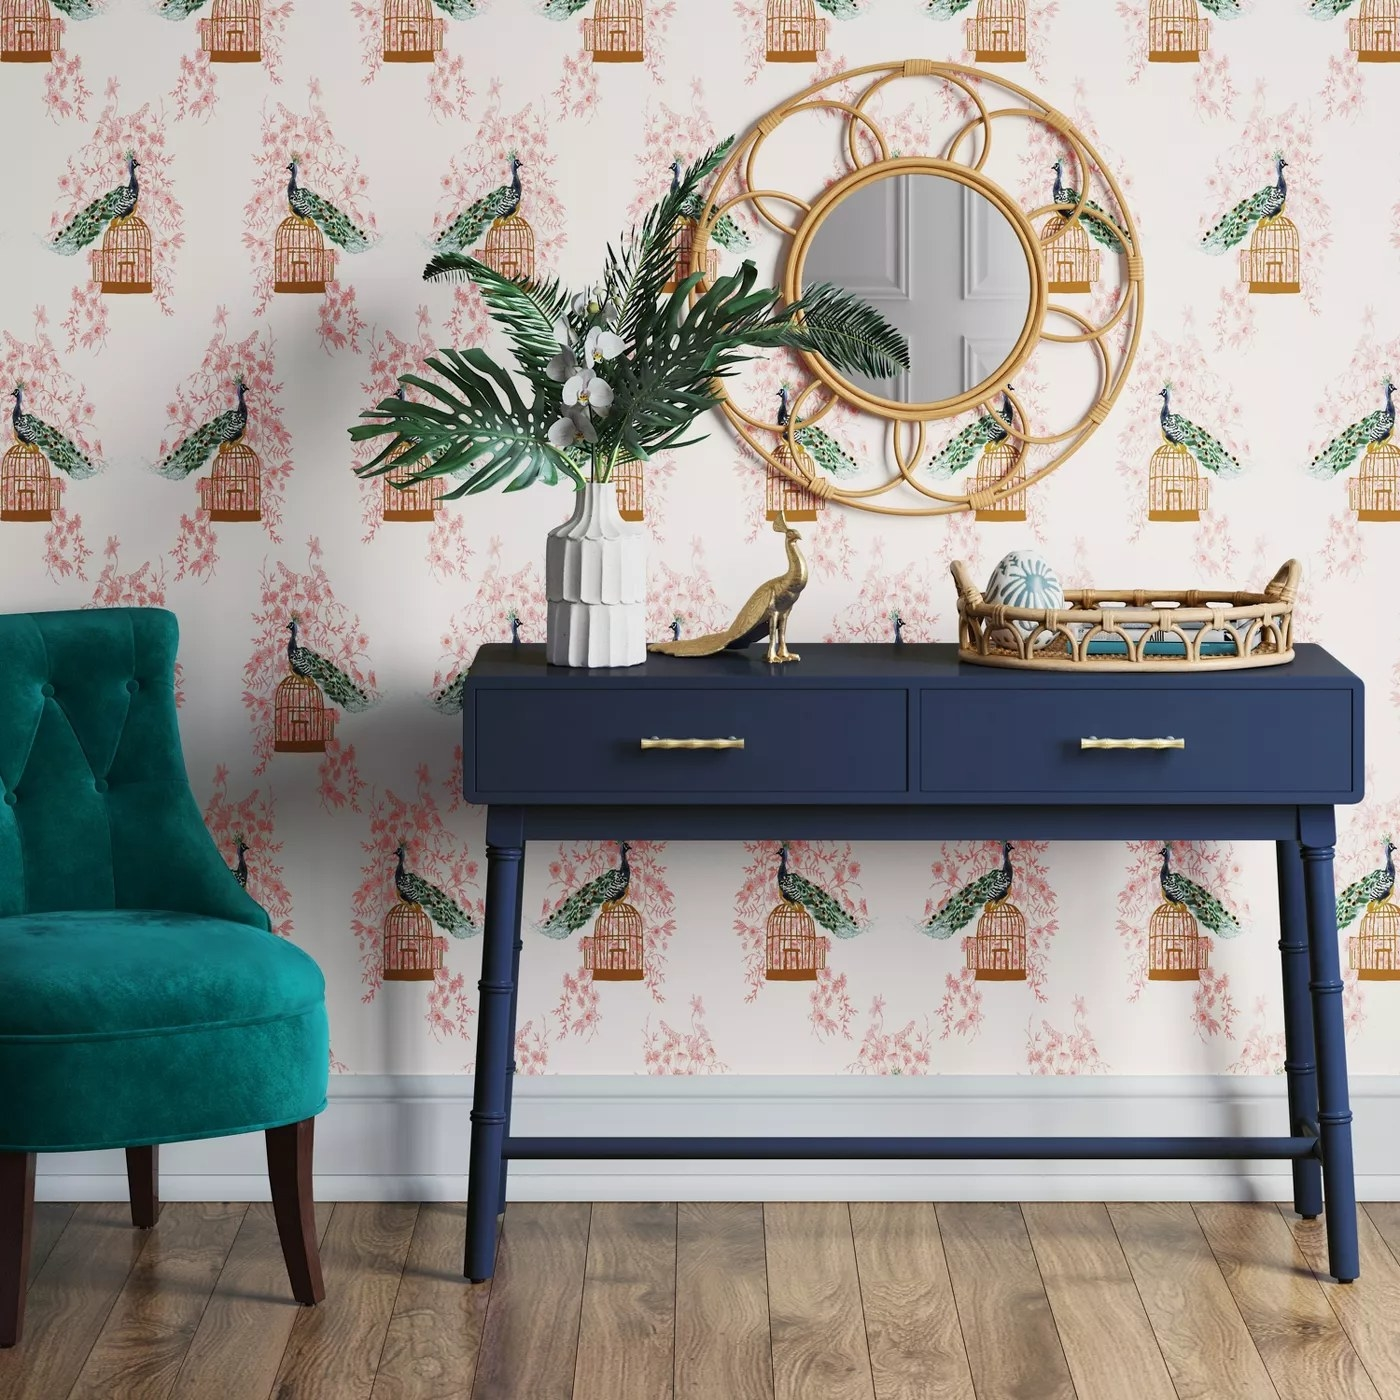 The blue table with two drawers in an entryway